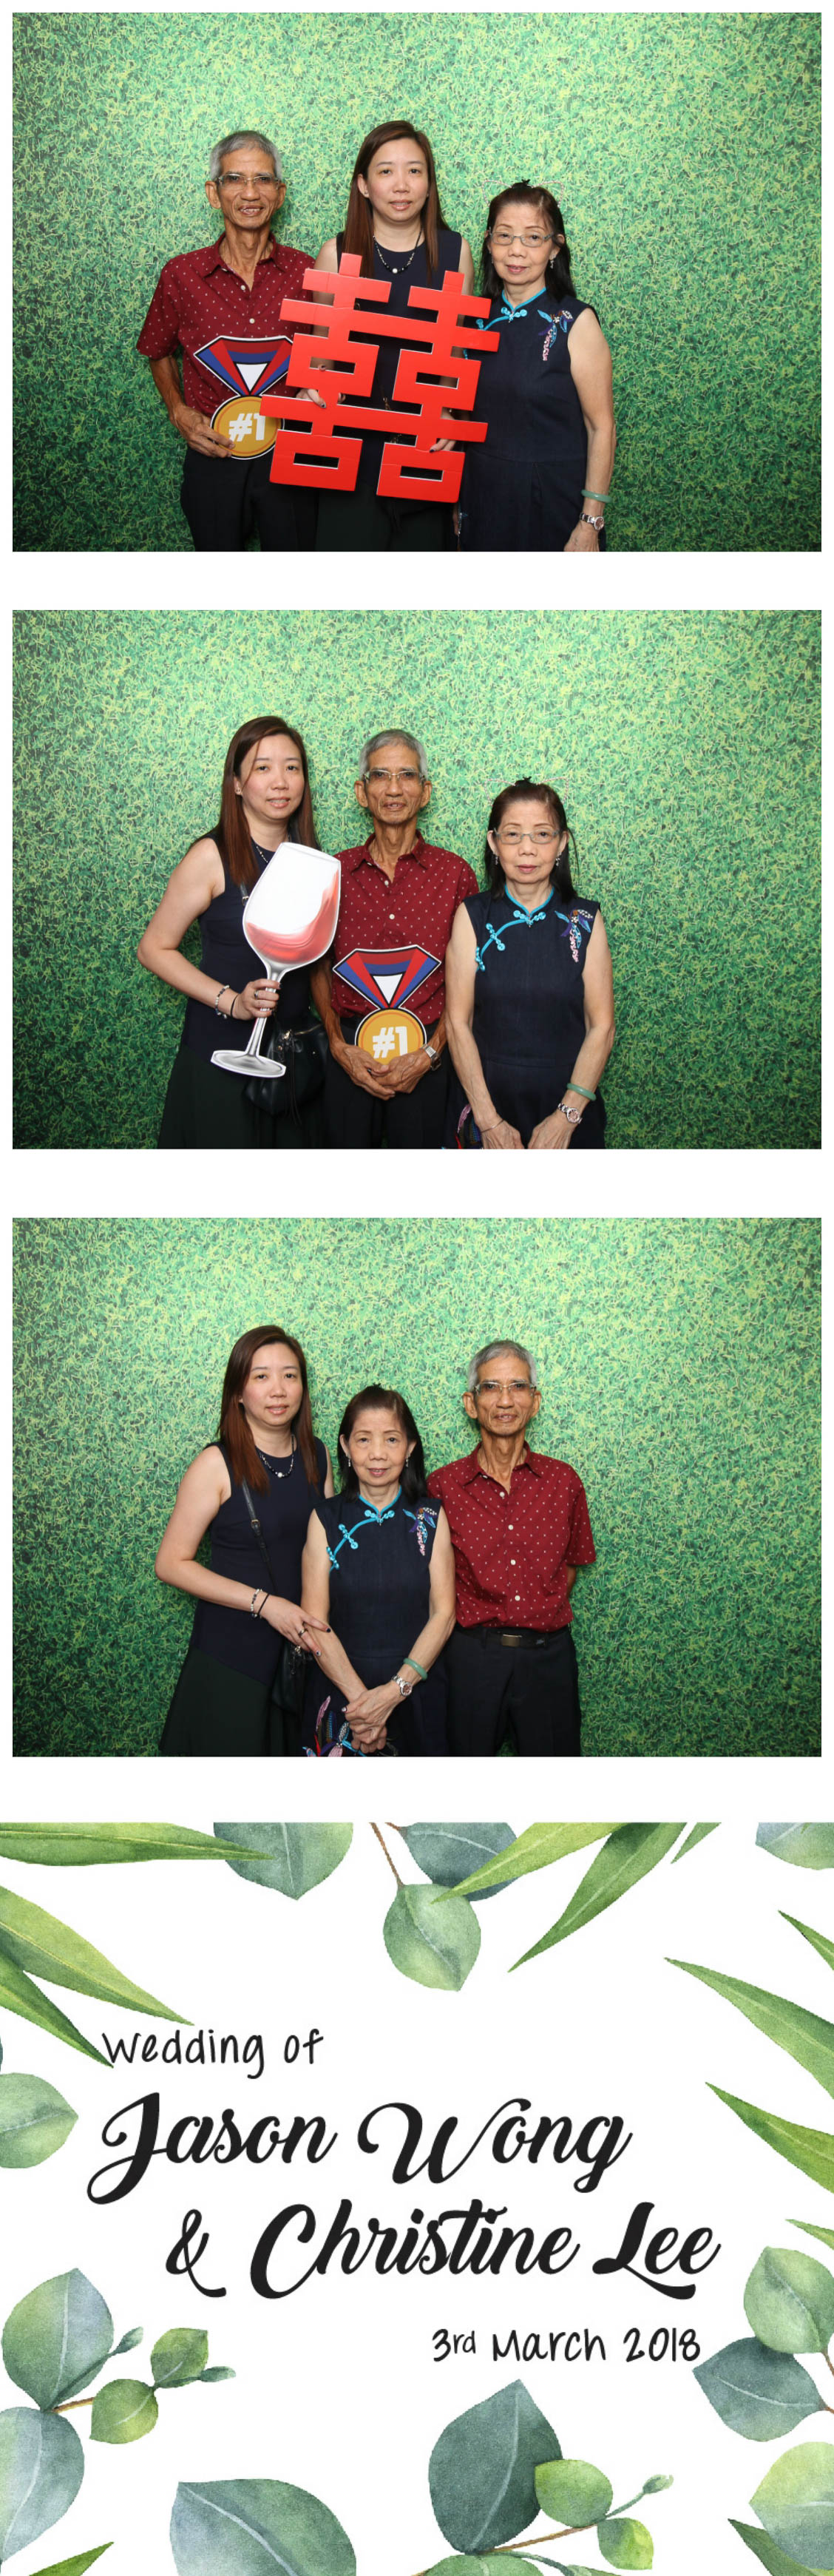 Photobooth 0302-16